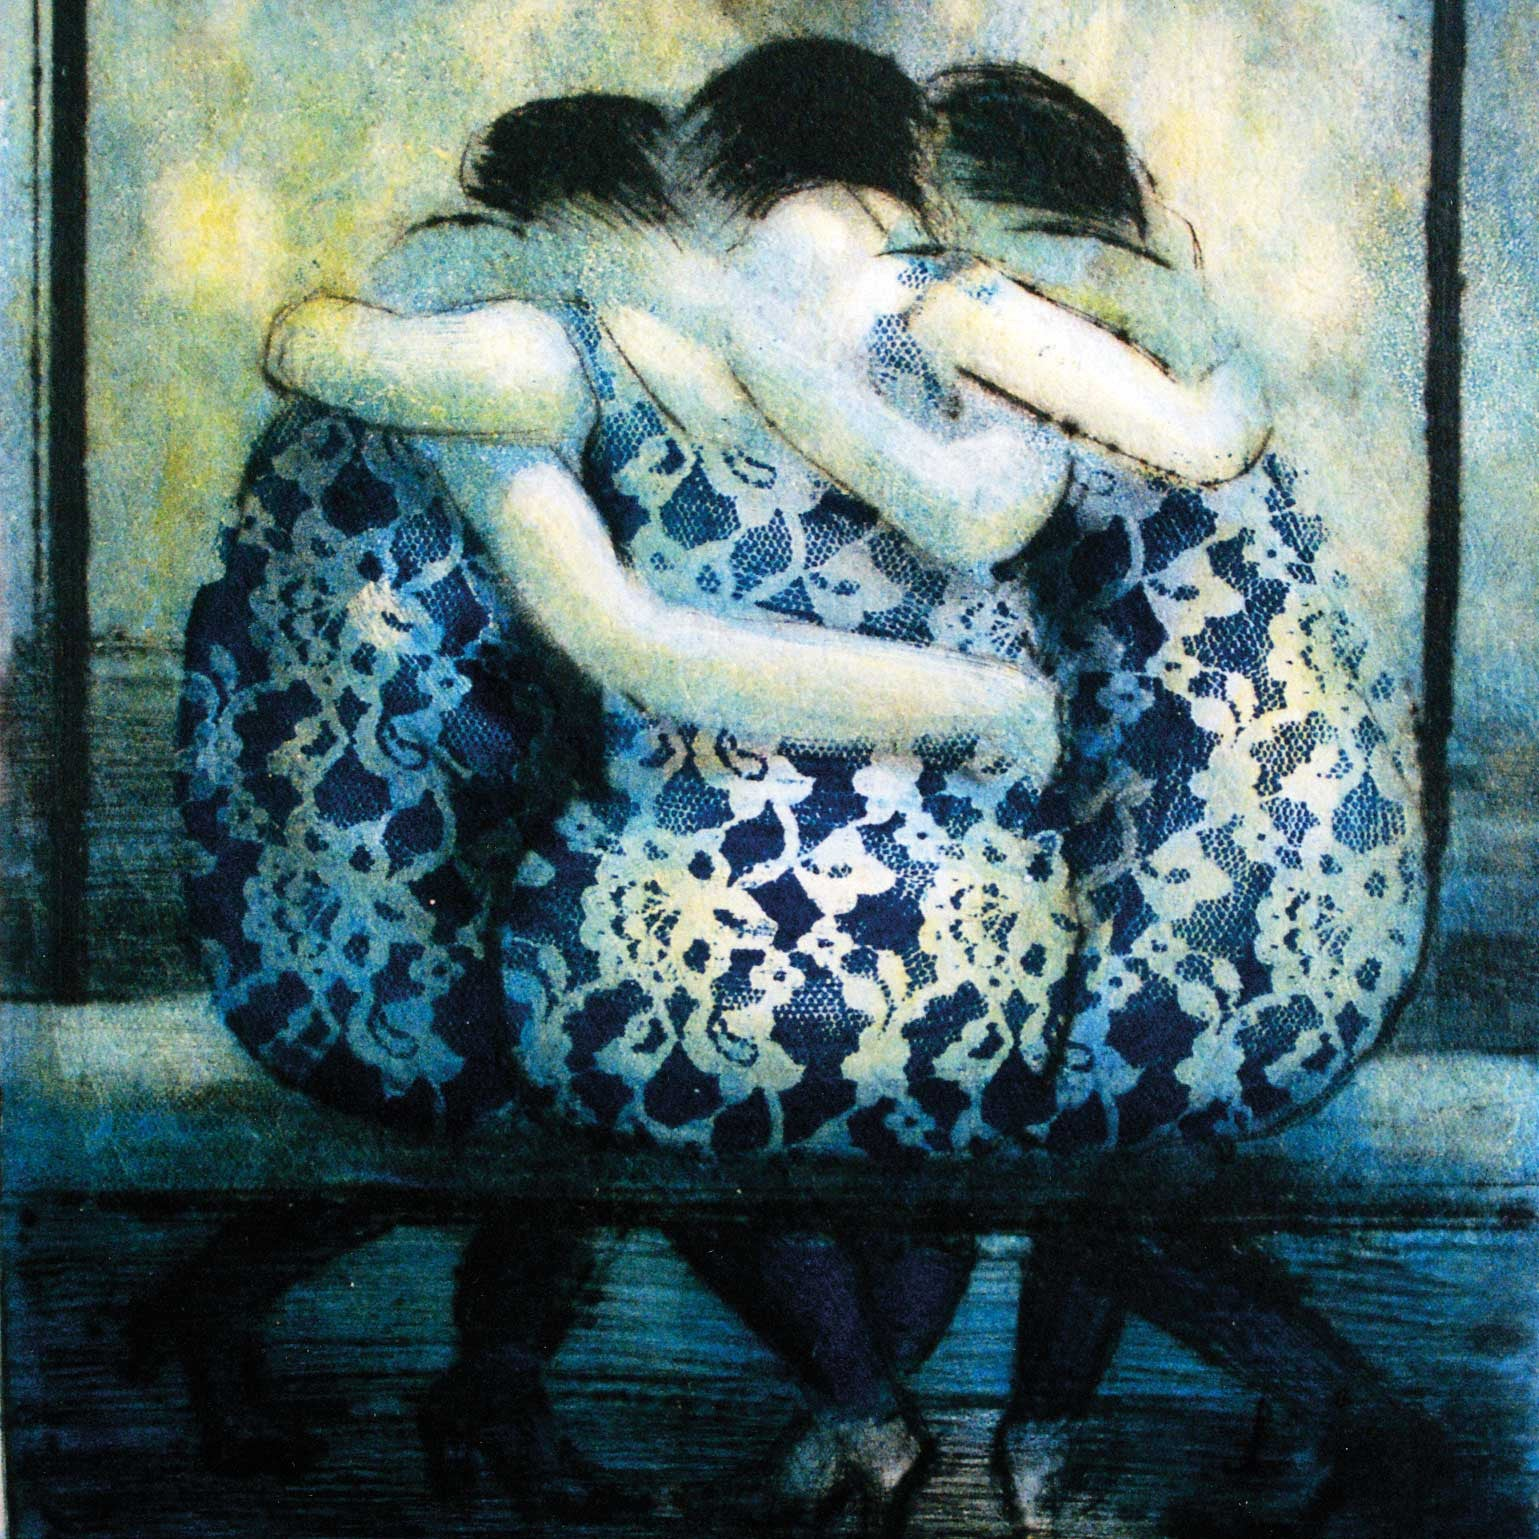 Art Greeting Card, Three women with arms around each other